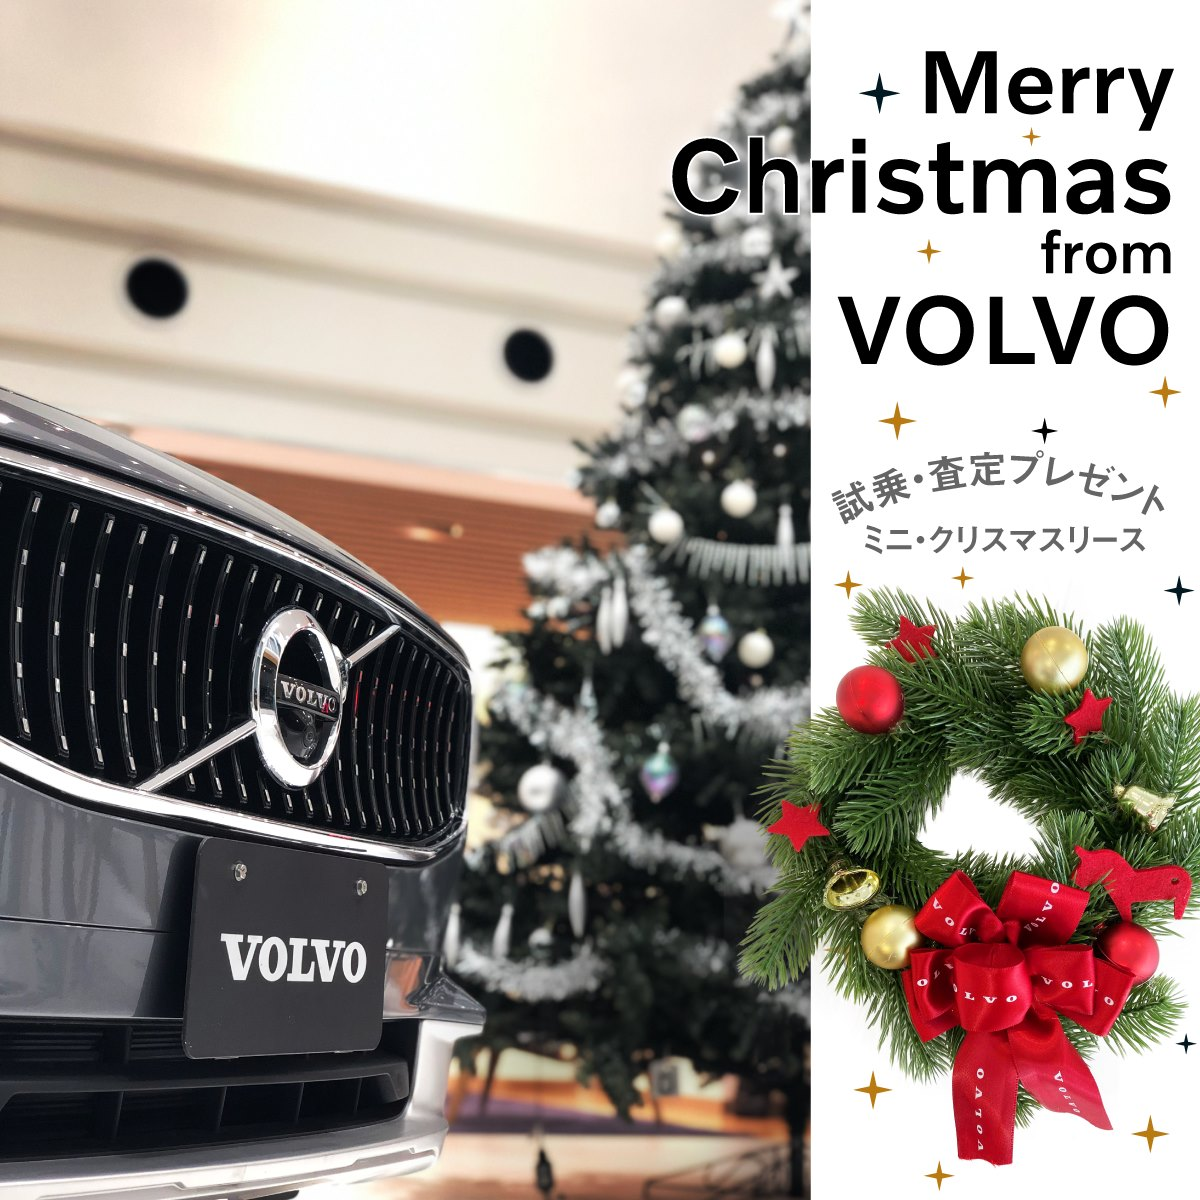 Merry Christmas from VOLVO